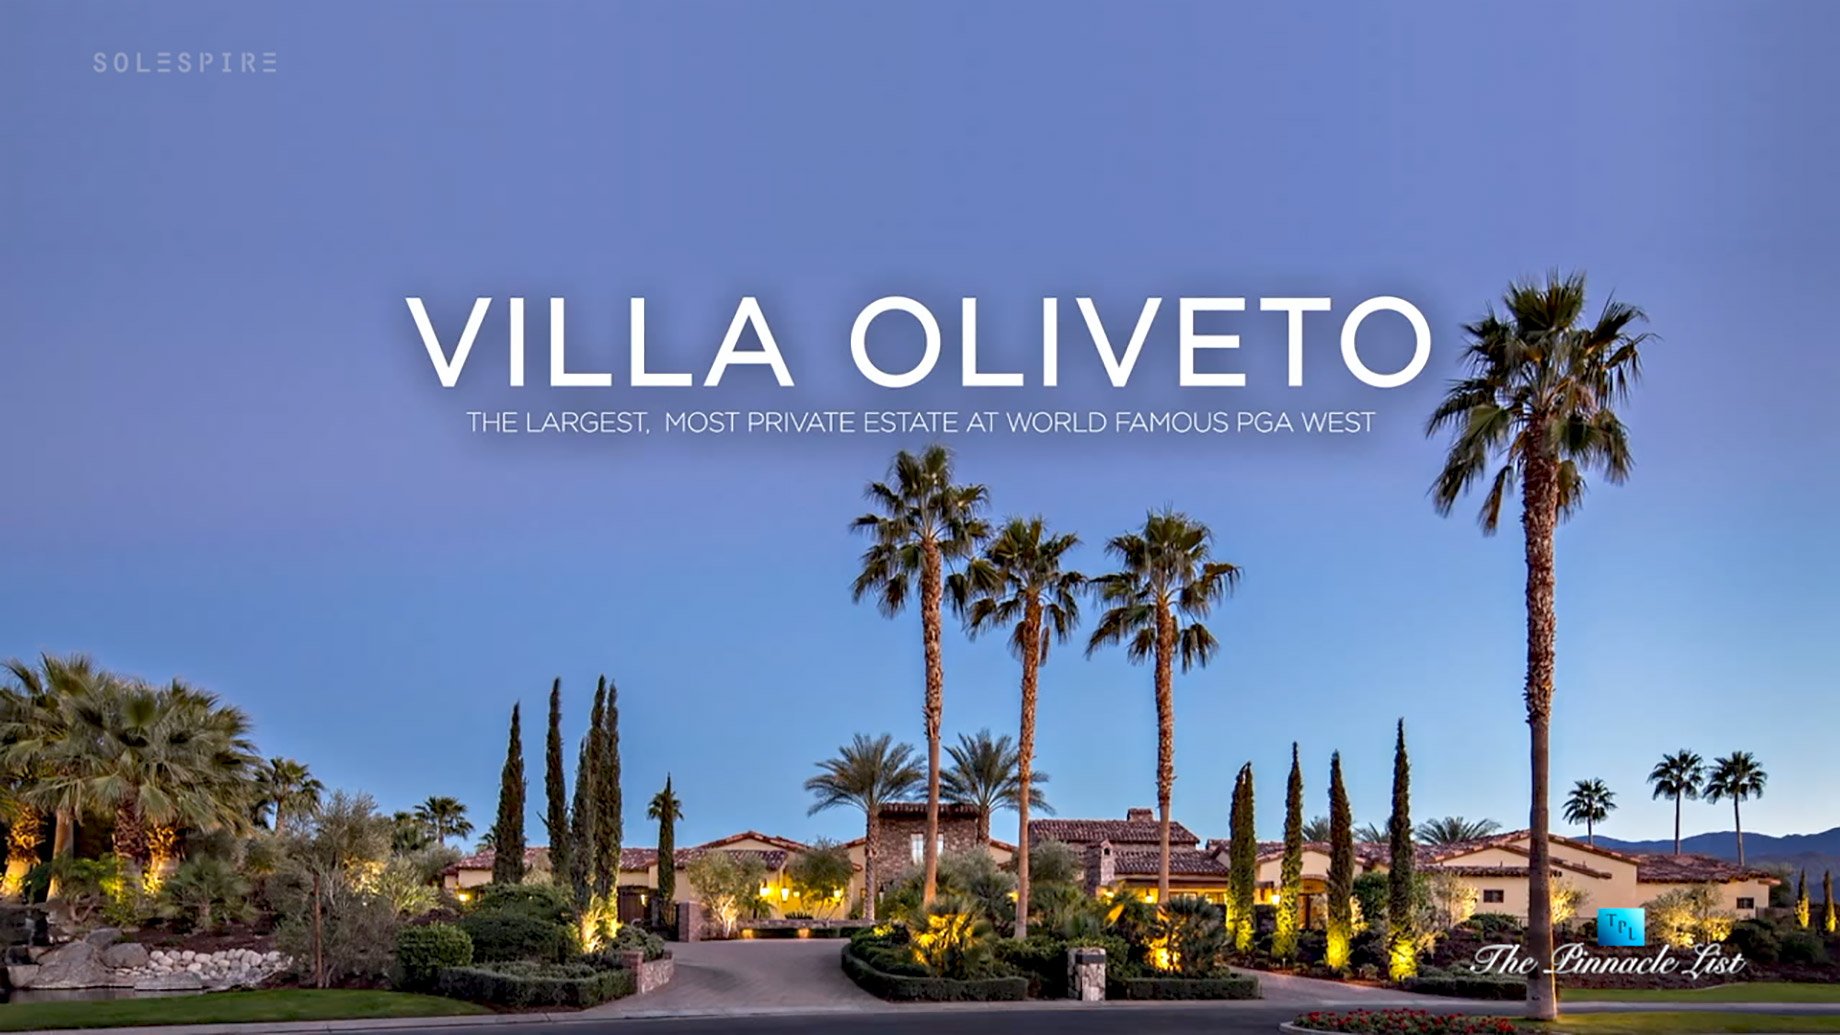 Villa Oliveto - 57370 Peninsula Ln, La Quinta, CA, USA - Video